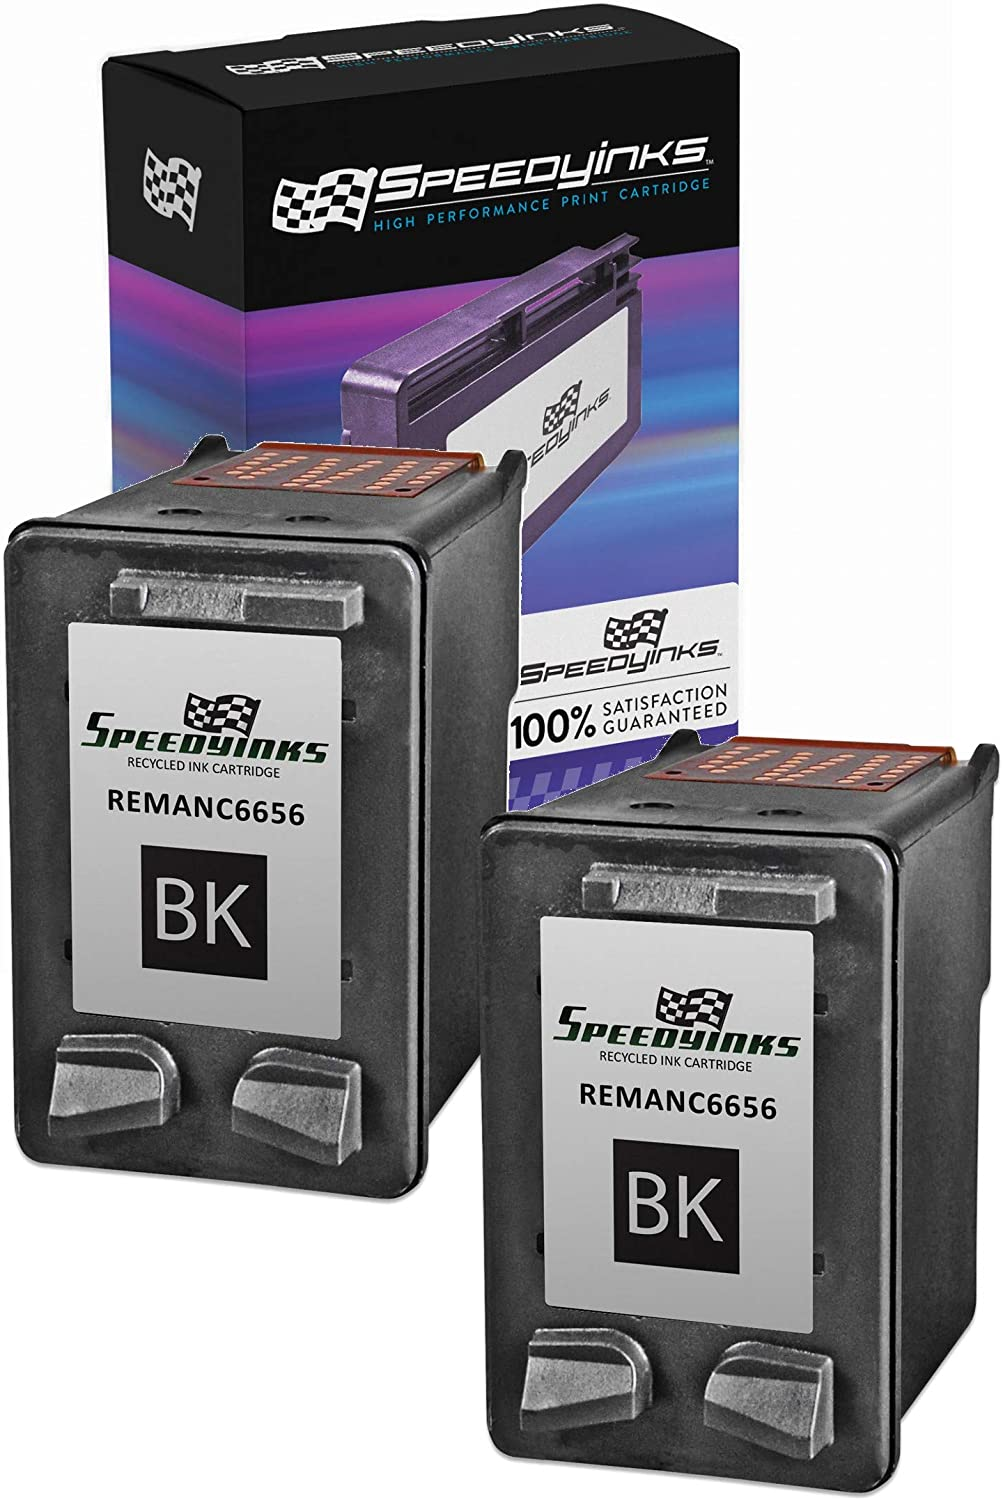 Speedy Inks Remanufactured Ink Cartridge Replacement for HP 56 (Black, 2-Pack)